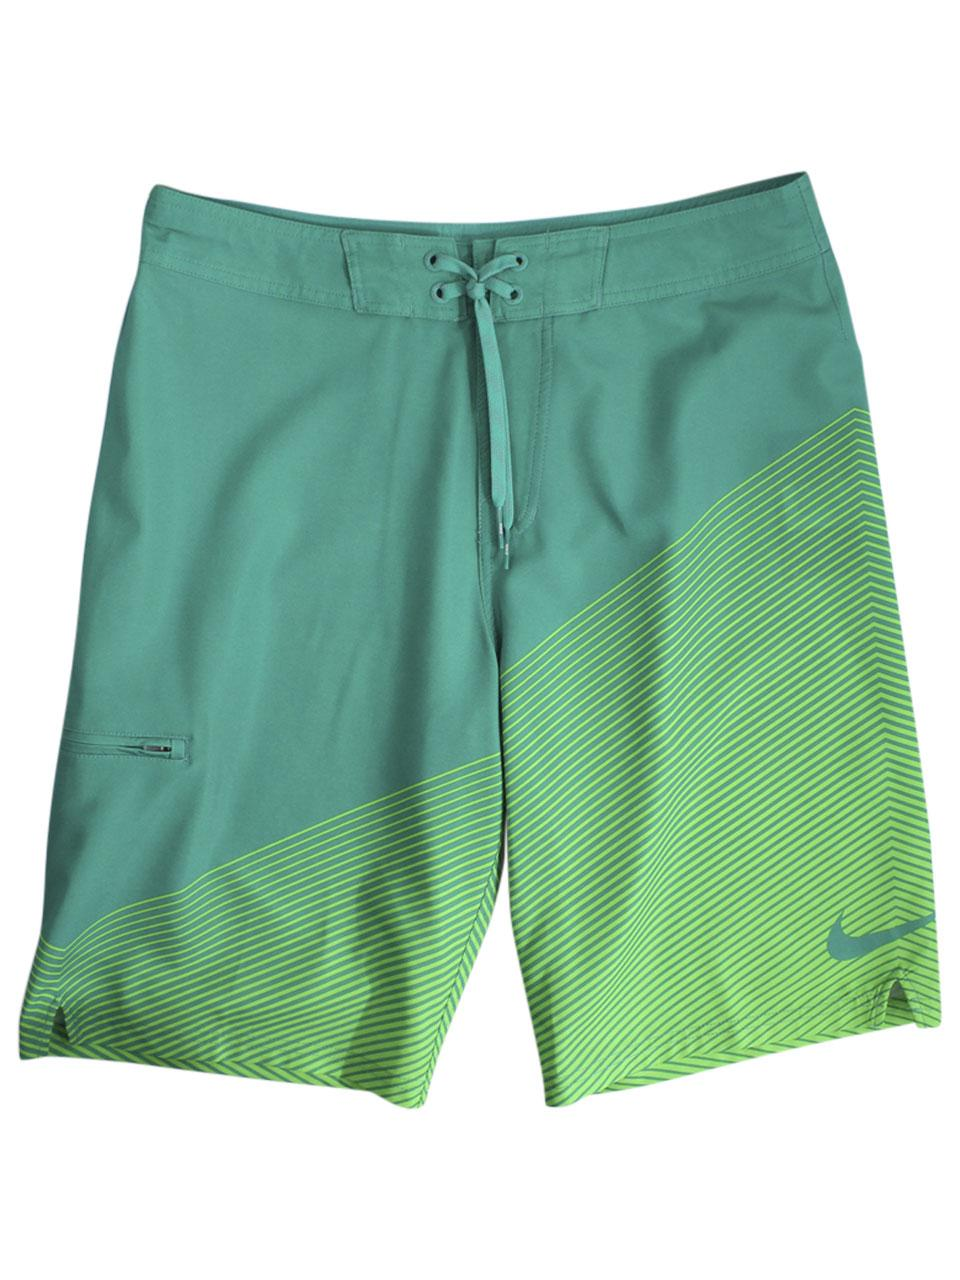 nike shorts with zip pockets